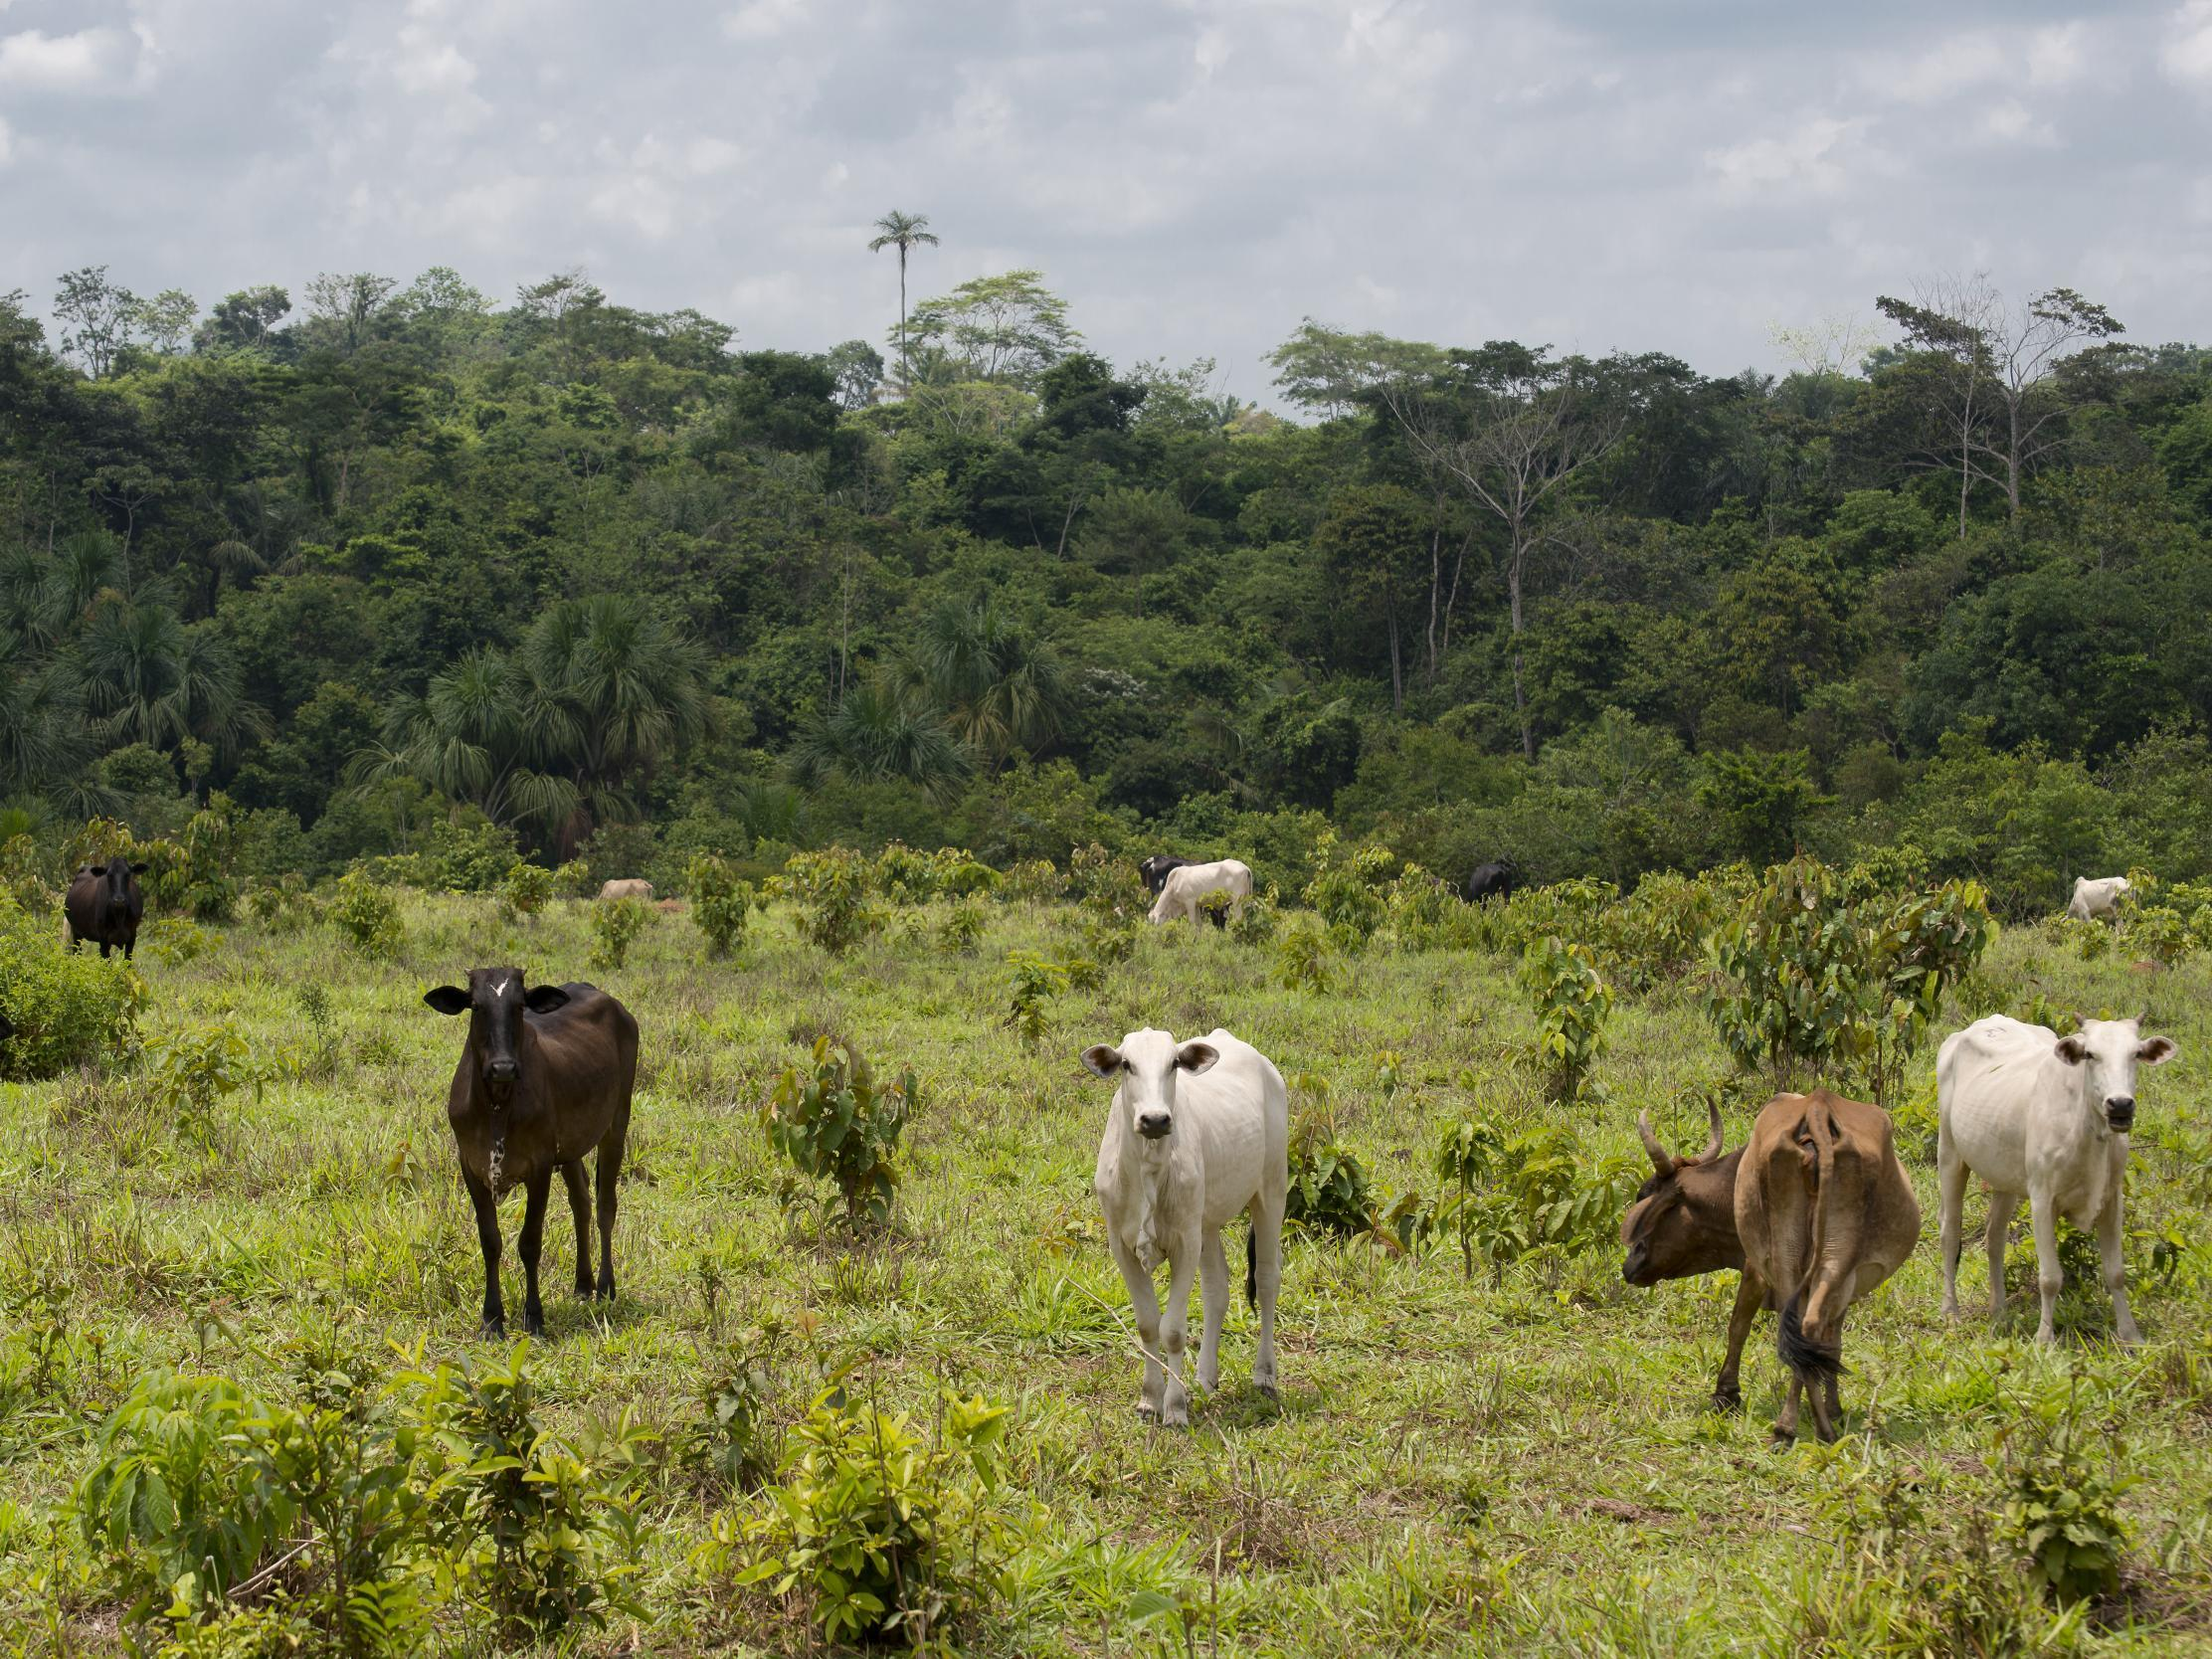 UK supermarkets are selling beef from firm linked to illegal destruction of Amazon rainforest